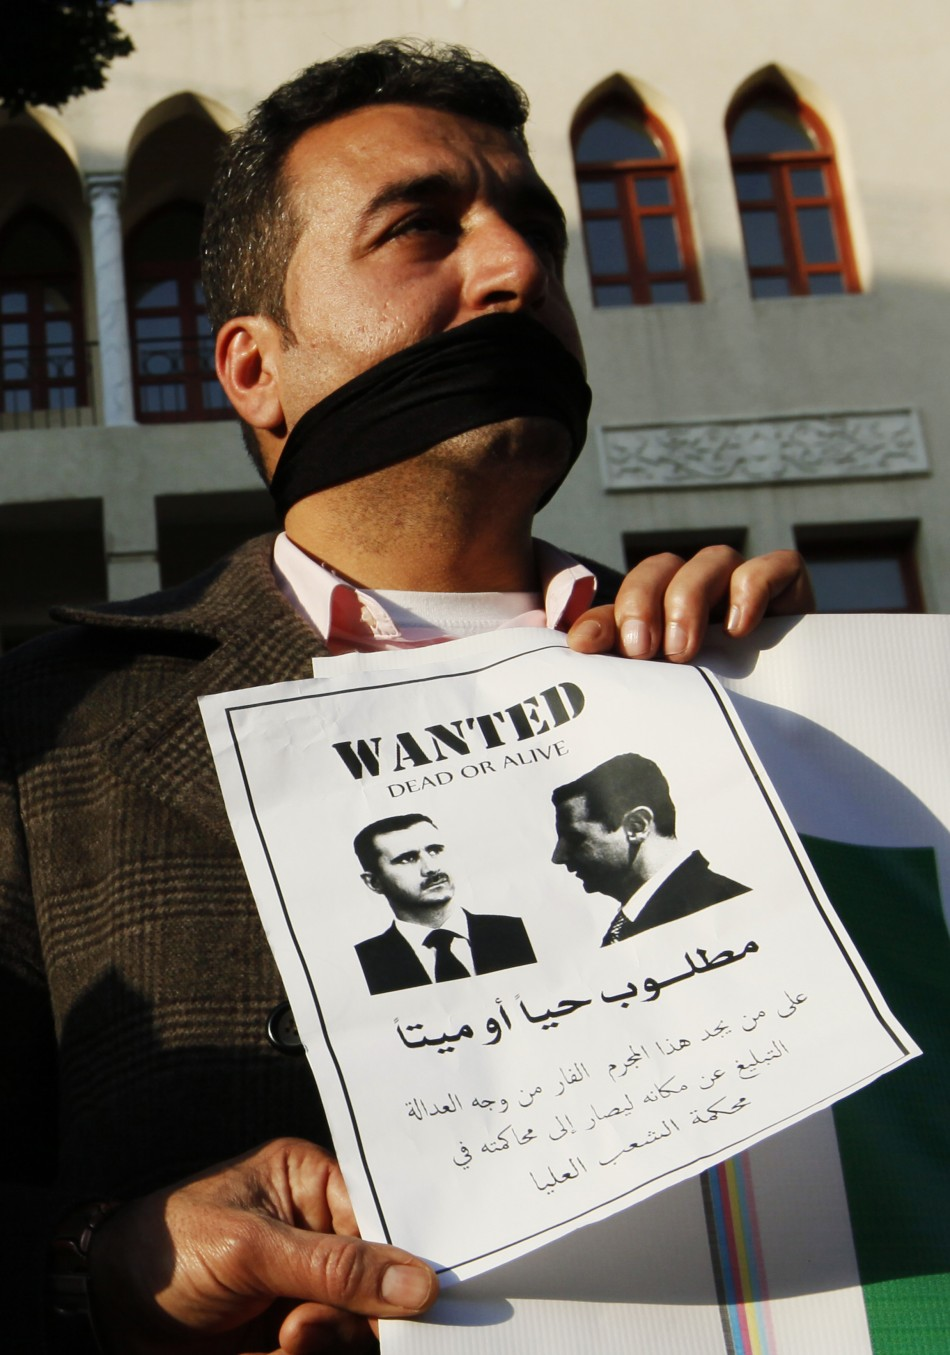 A Syrian man living in Lebanon carries a sign as he protests against Syrian President Bashar al-Assad during a sit-in demonstration in Beirut